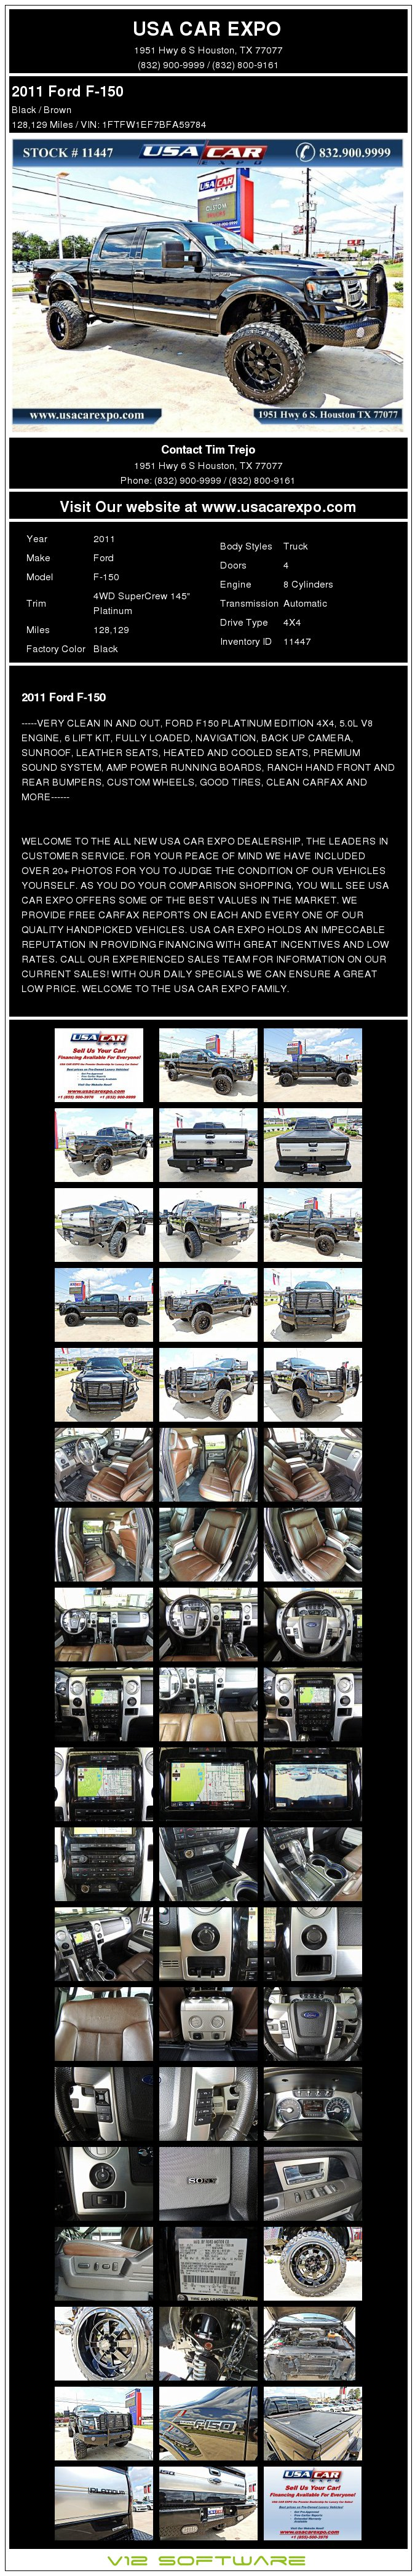 $25,900, 2011 Ford F-150 Platinum 4x4 Lifted